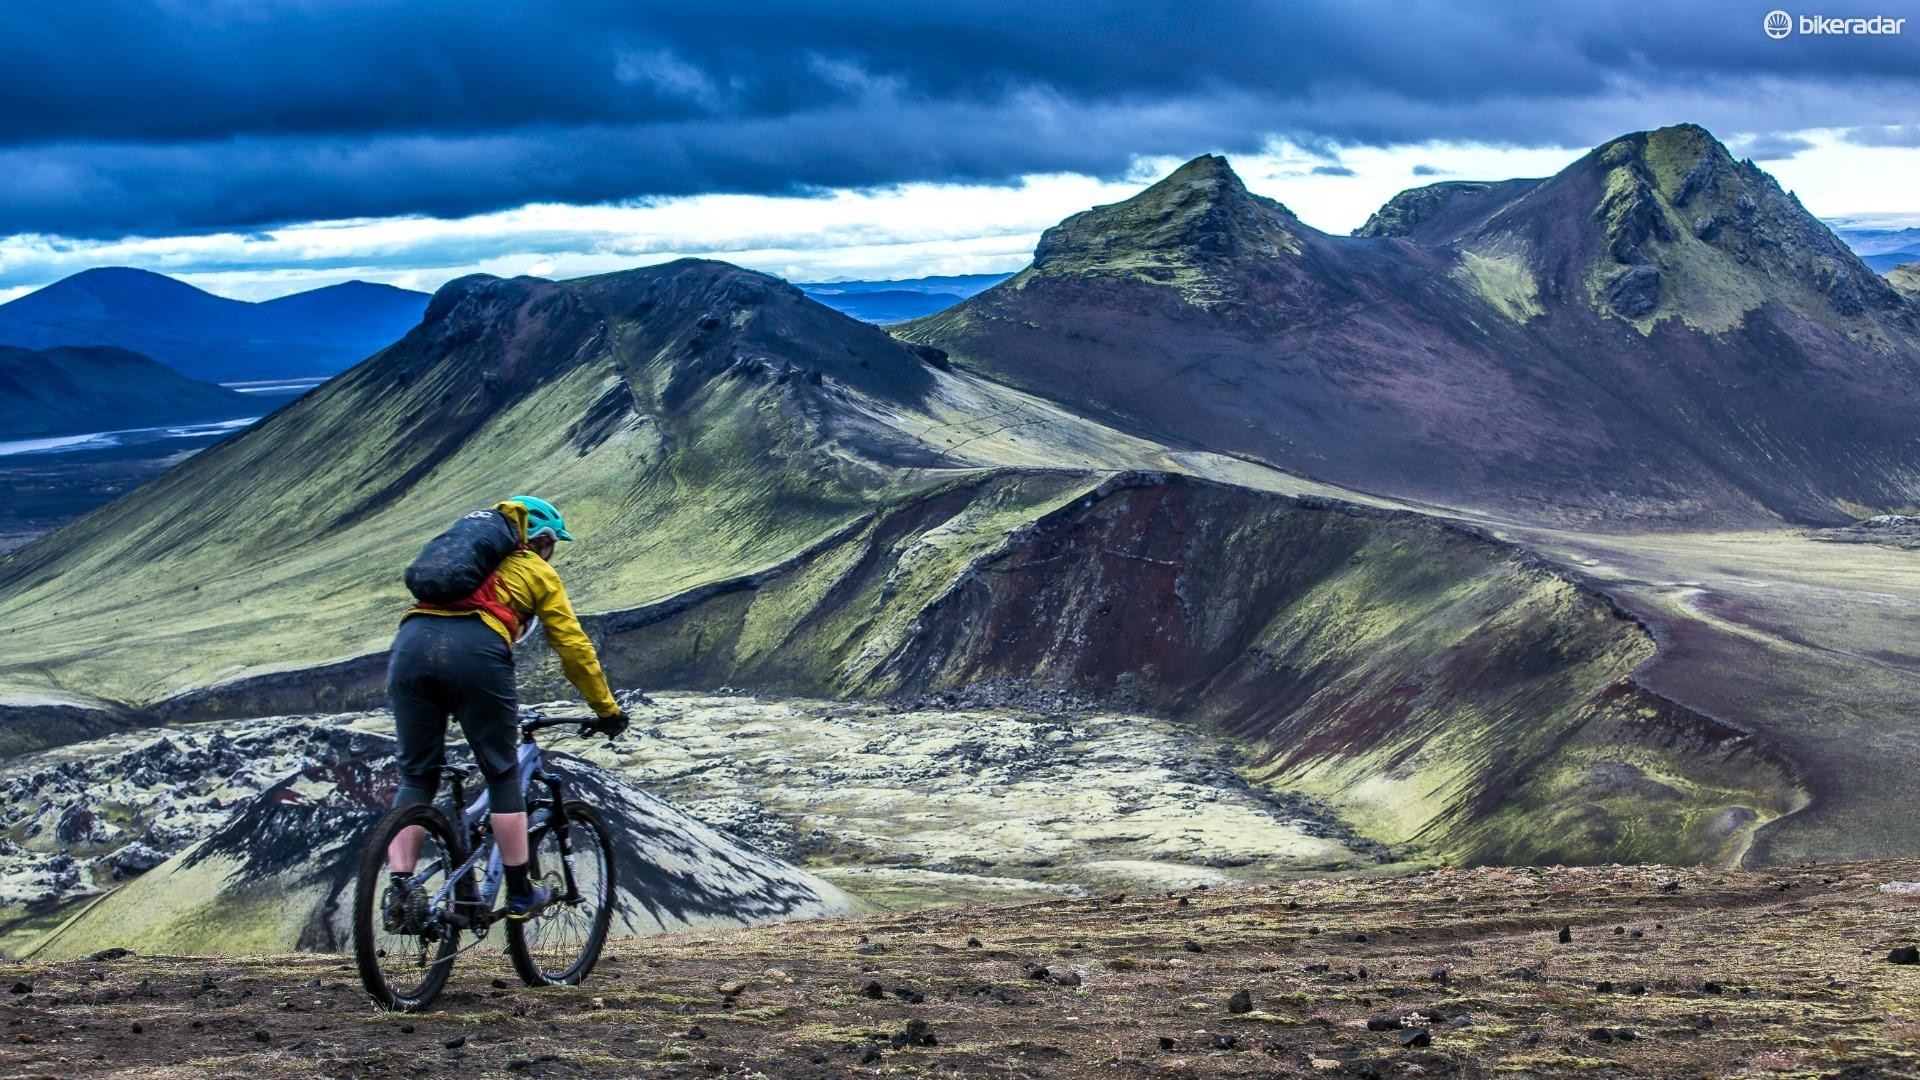 Iceland had been on my ride bucket list forever